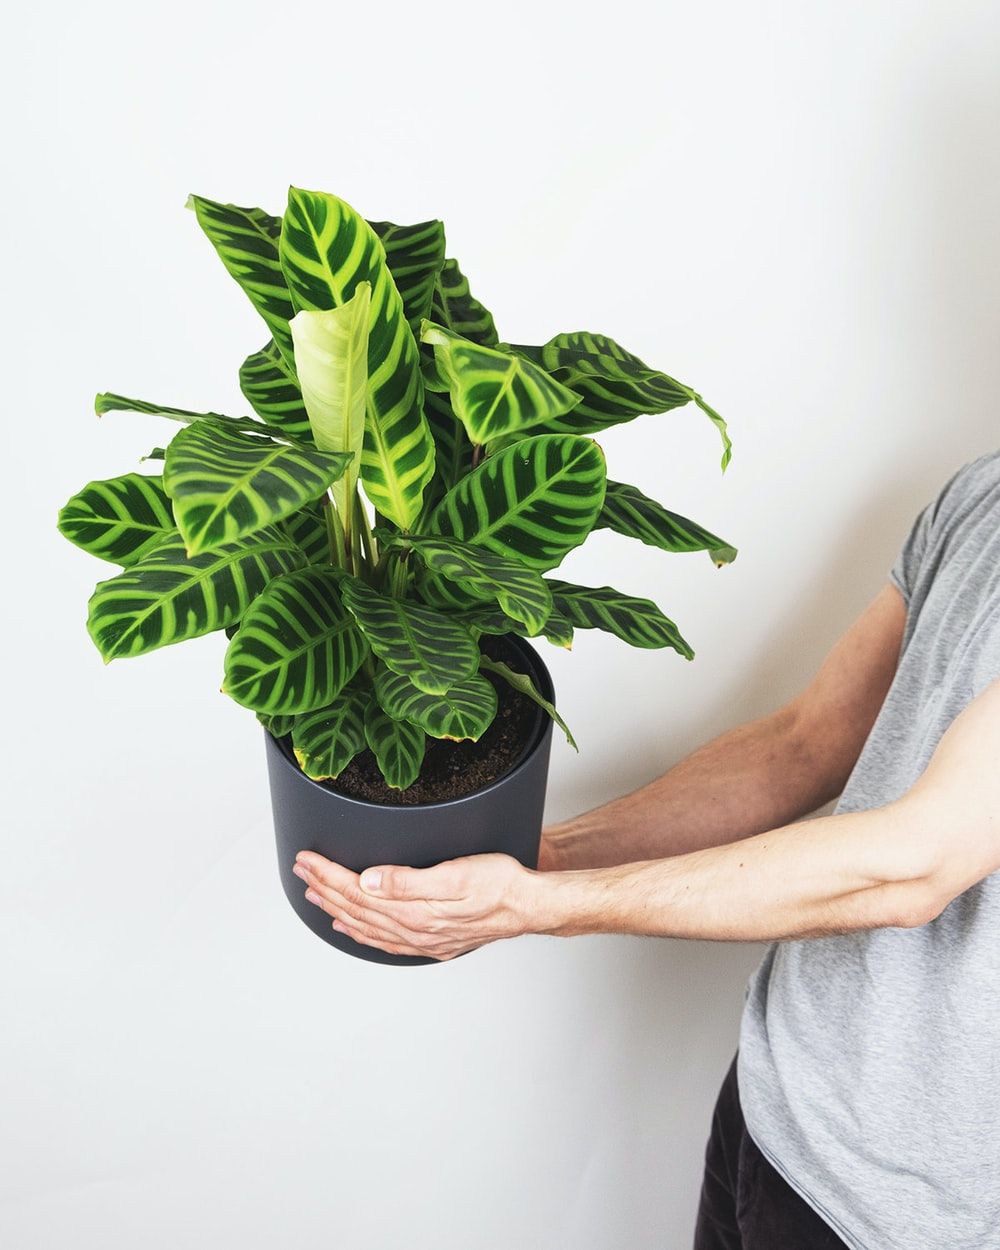 person holding green plant in black pot